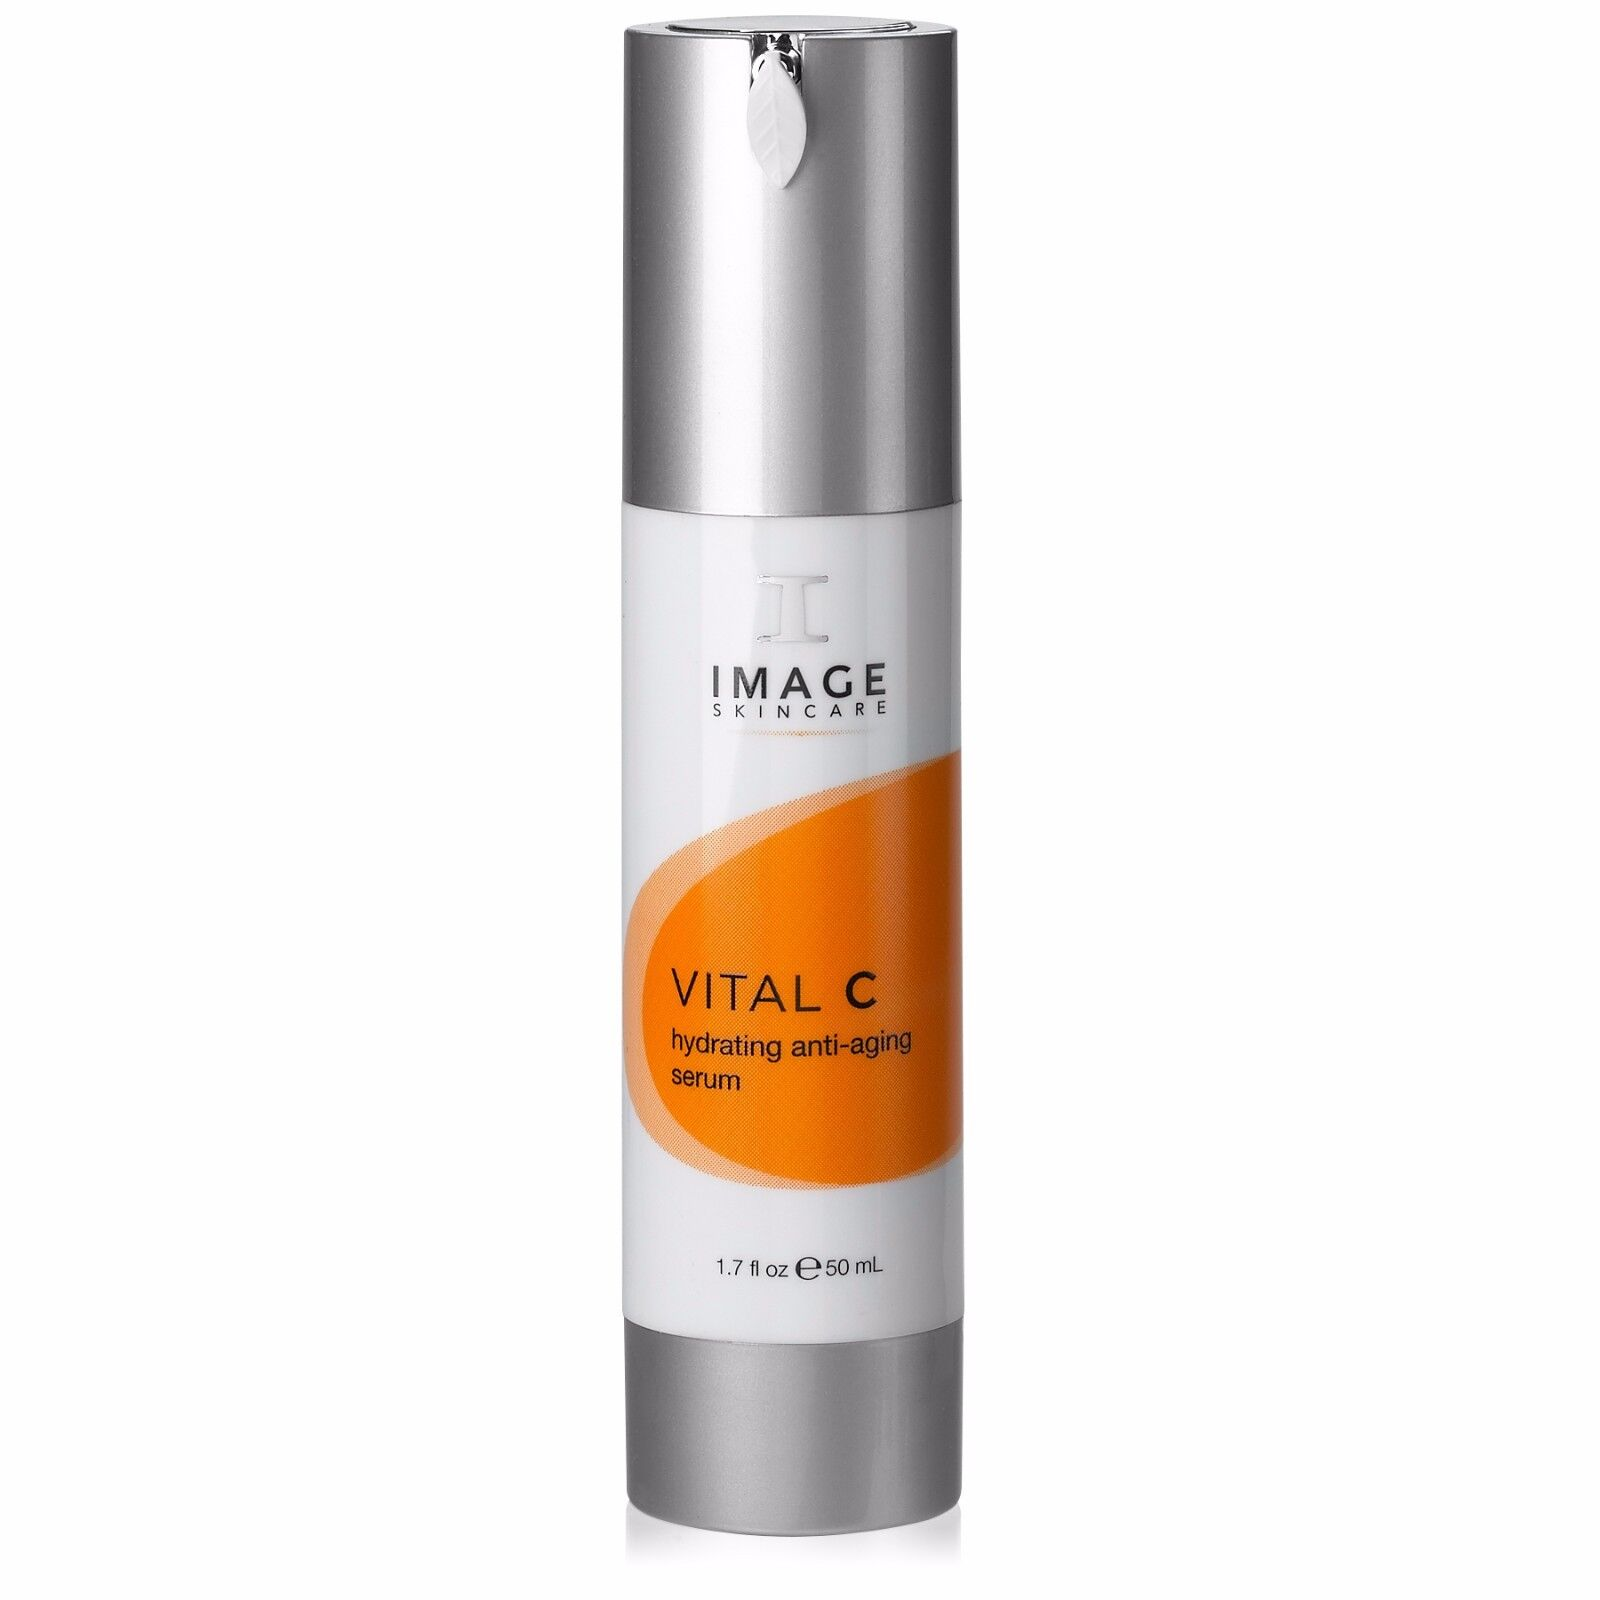 Image Skincare Vital C Hydrating Anti-Aging Serum 1.7 Ounce